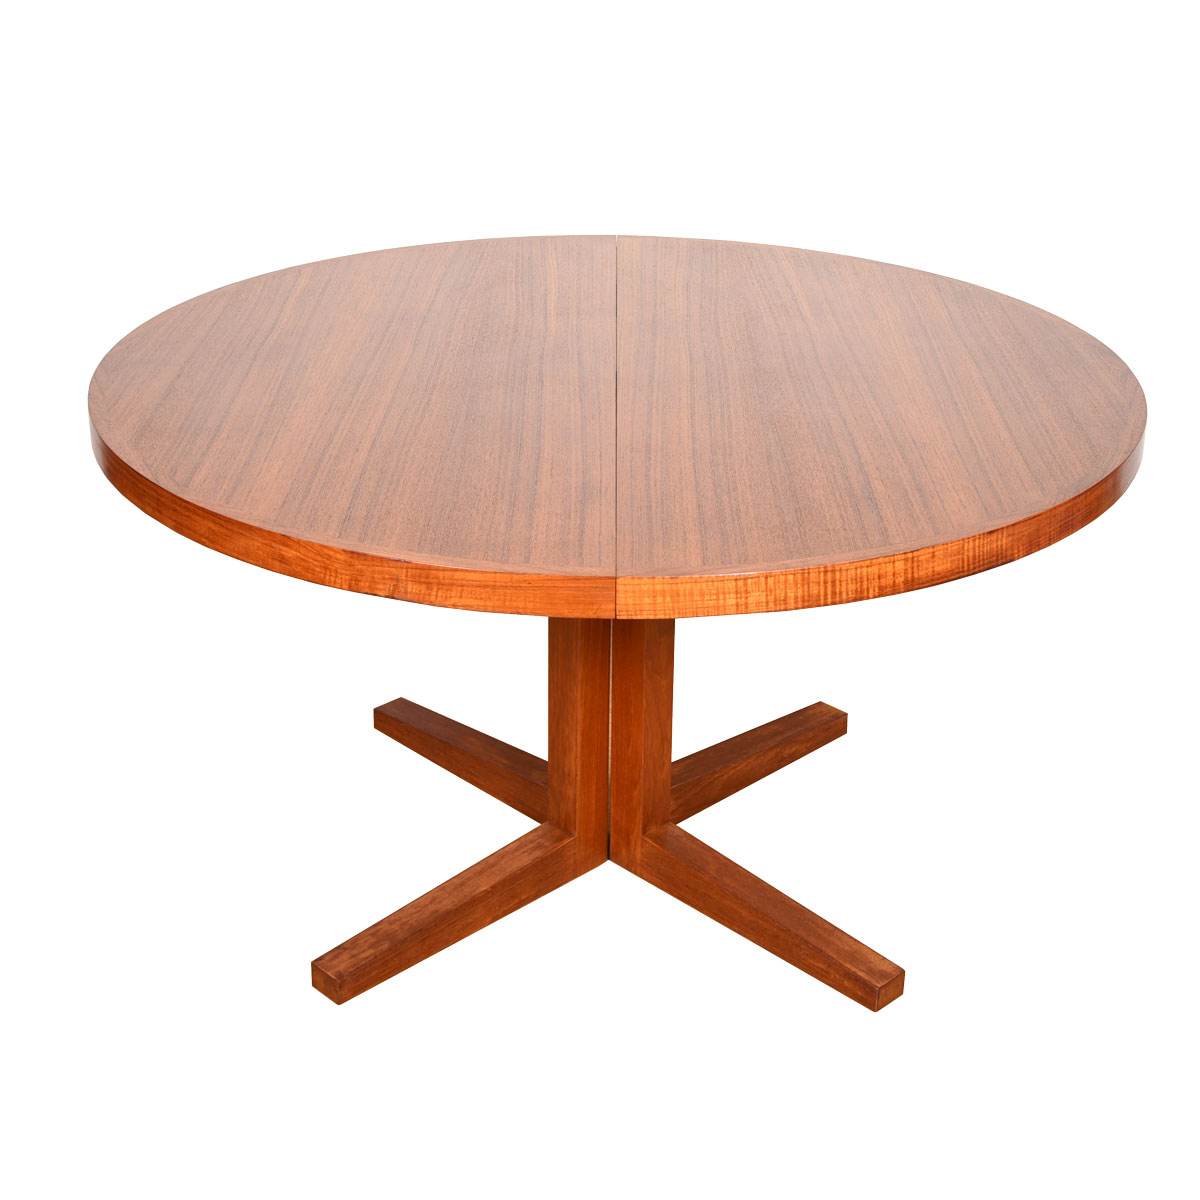 Pedestal Base Danish Teak Expanding Round-to-Oval Dining Table